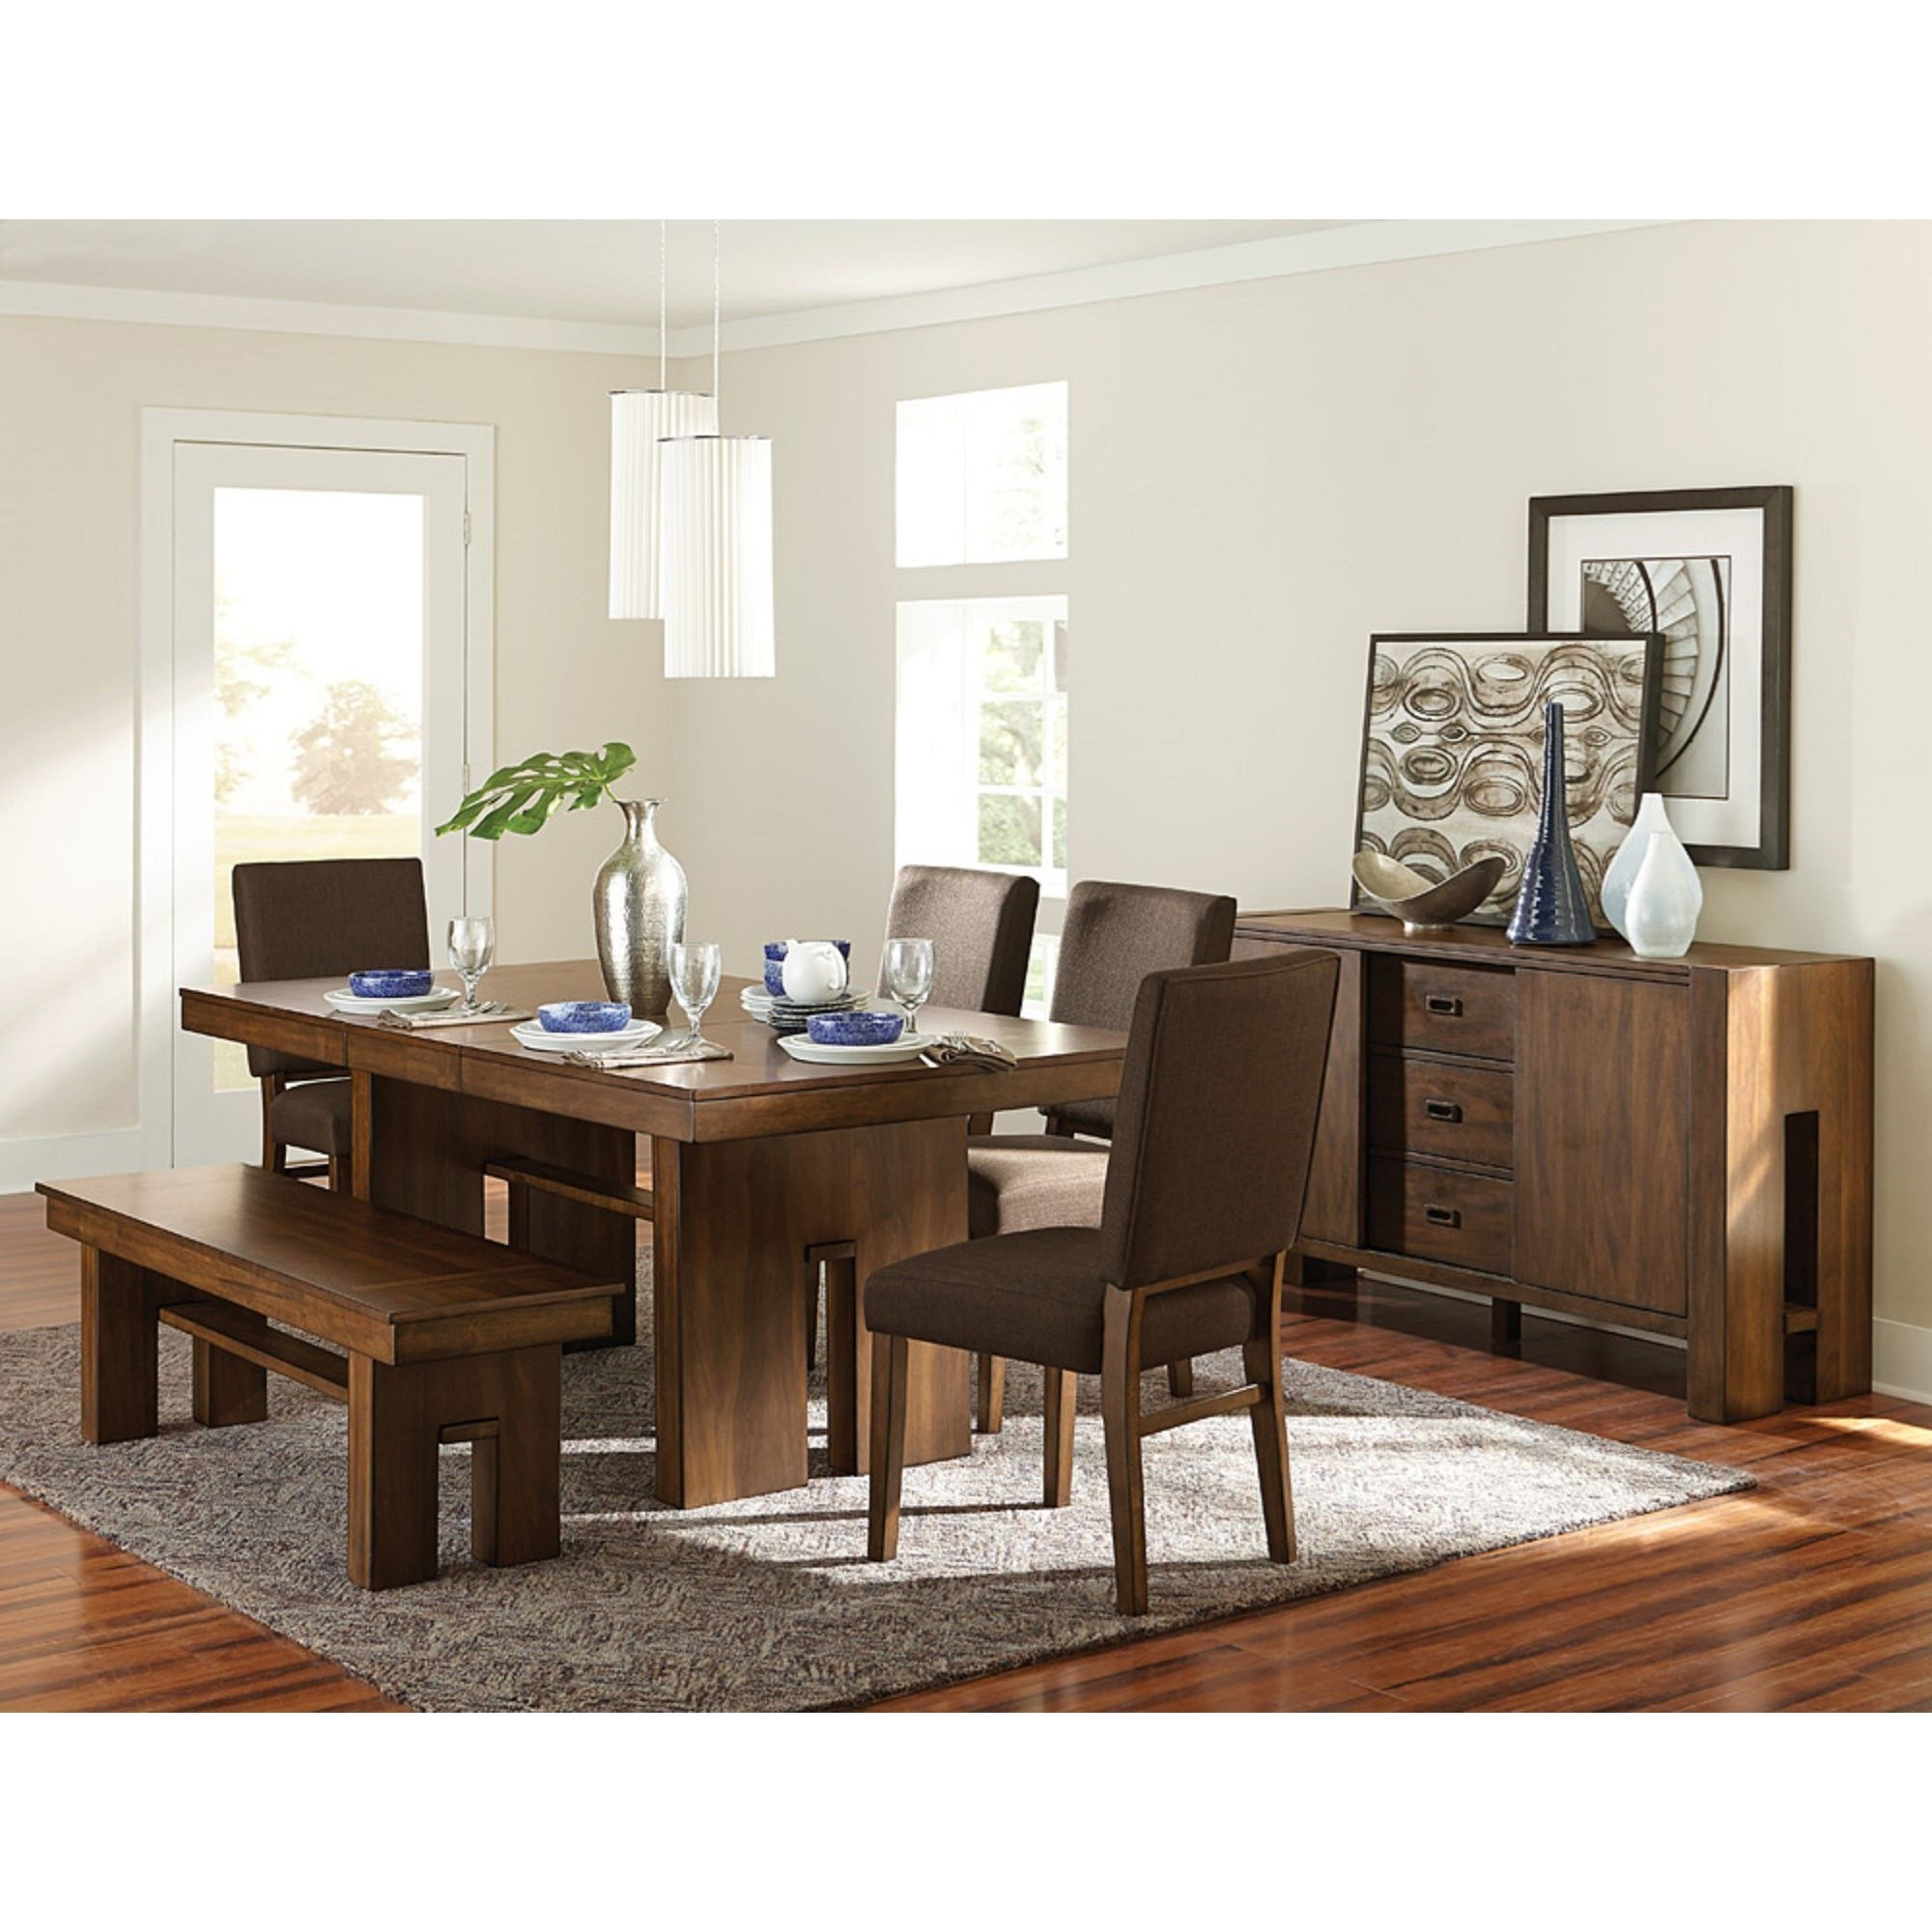 Sedley Contemporary Formal Dining Room Group With Bench And Self Storing Leaf By Homelegance At Reeds Furniture